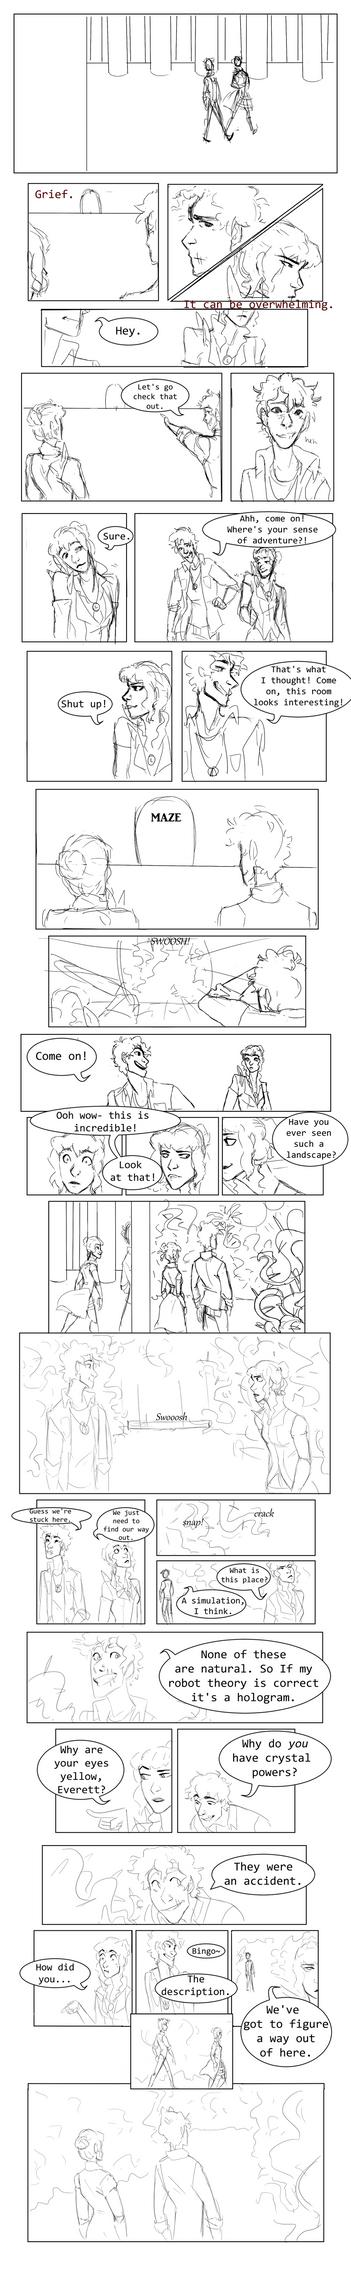 Tower: Round One Page Four by chamimation